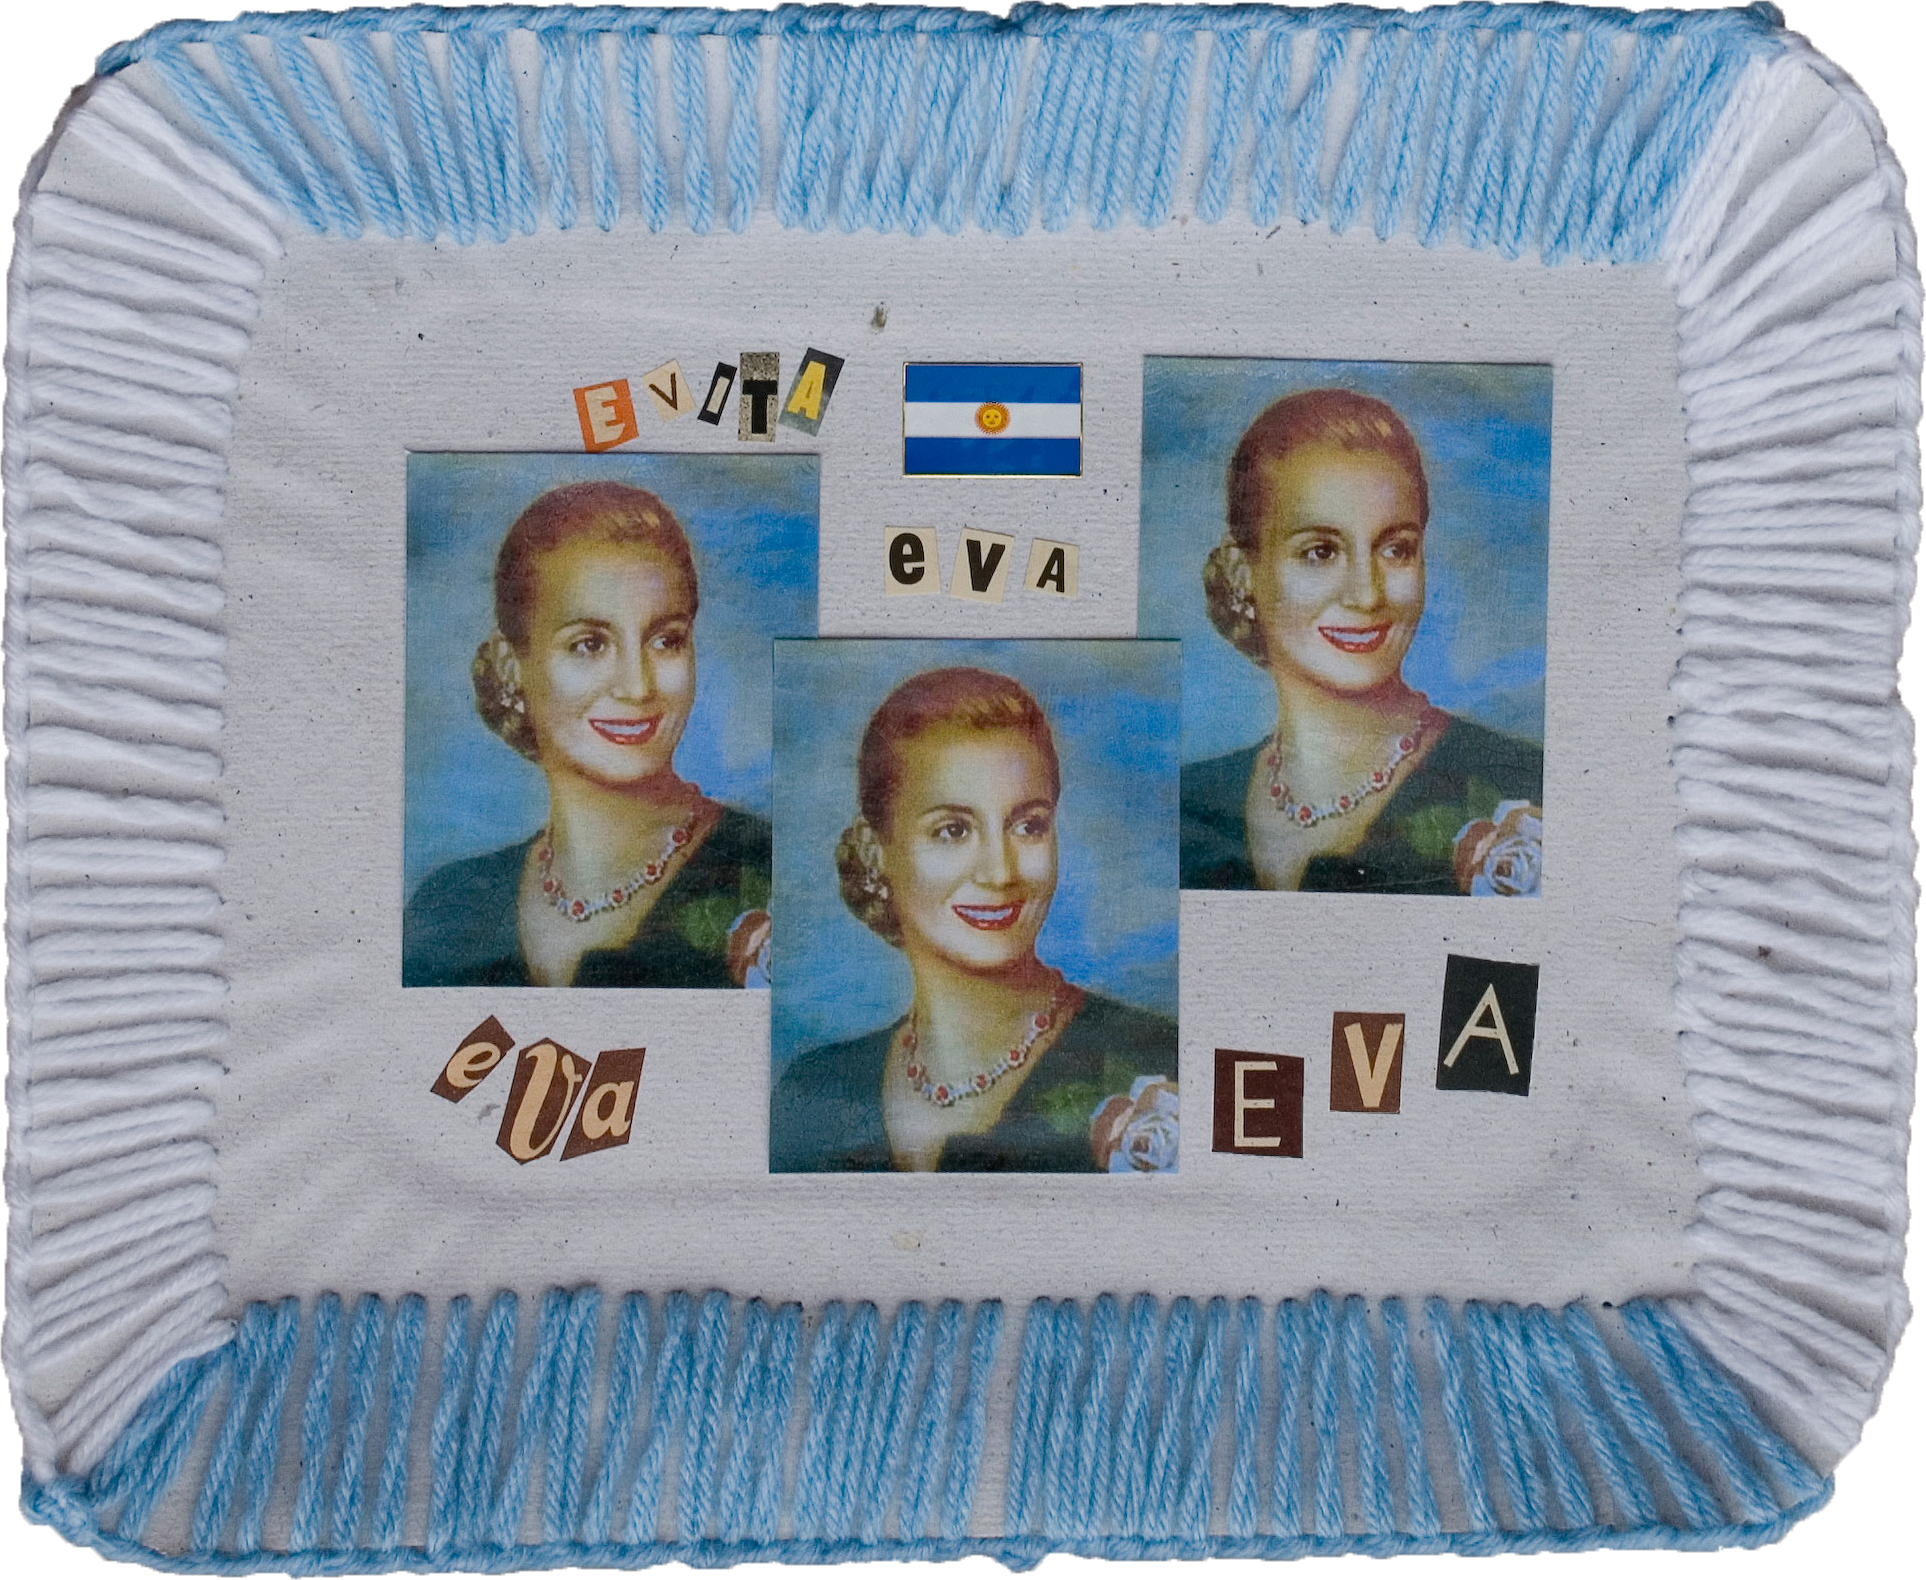 Evita-Eva,  papel collage y bordado sobre bandeja de cartón, 2010